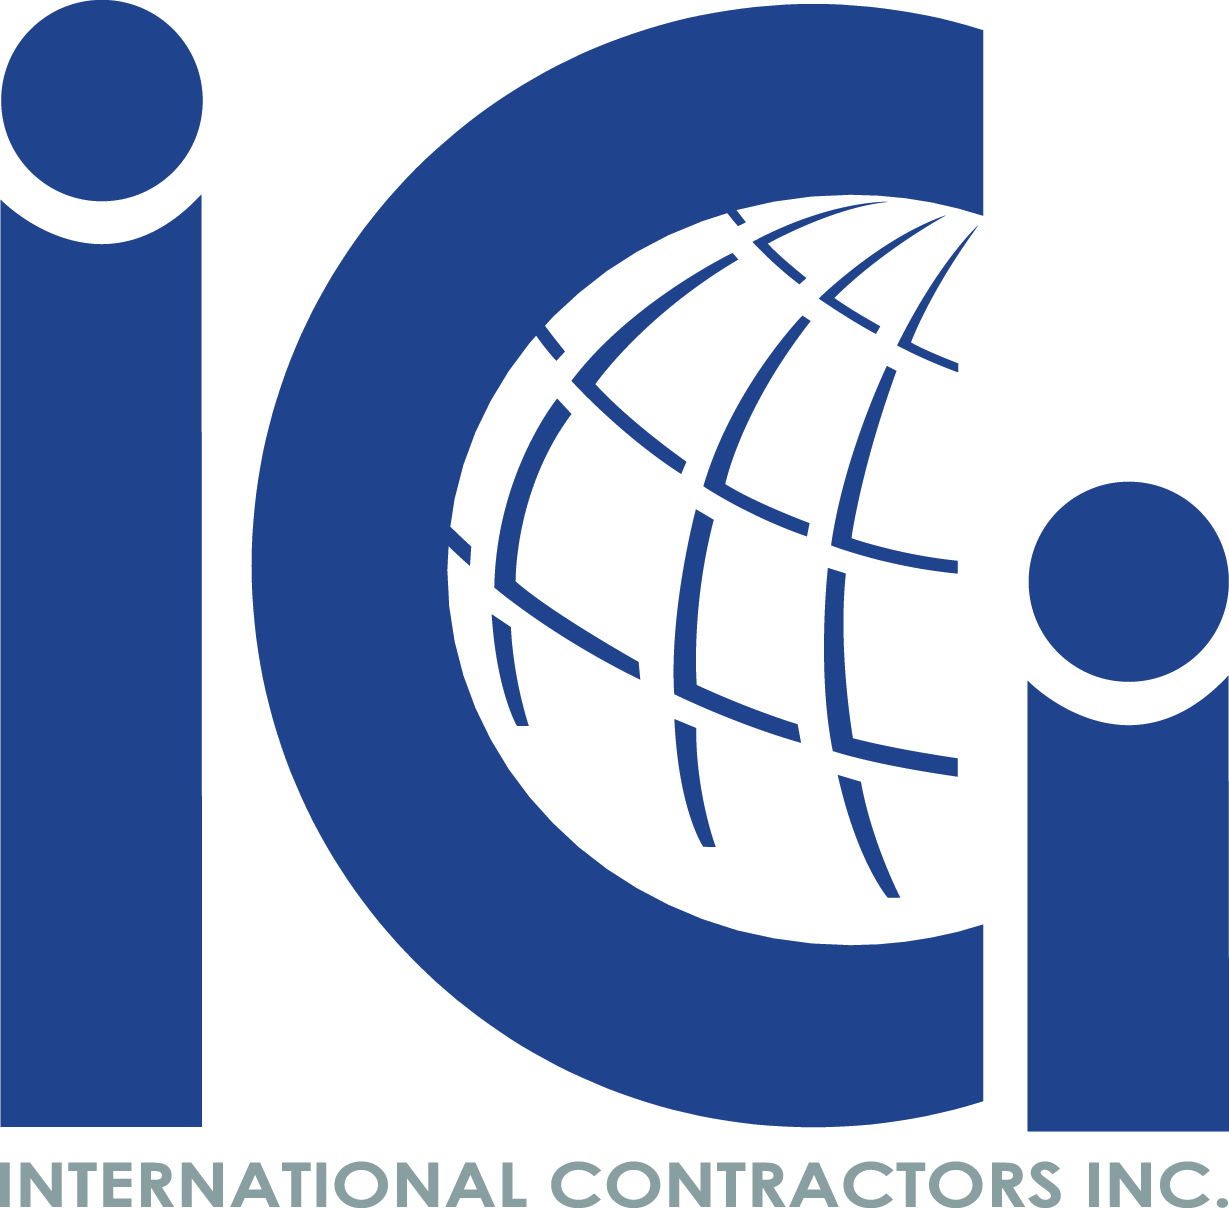 International Contractors Inc